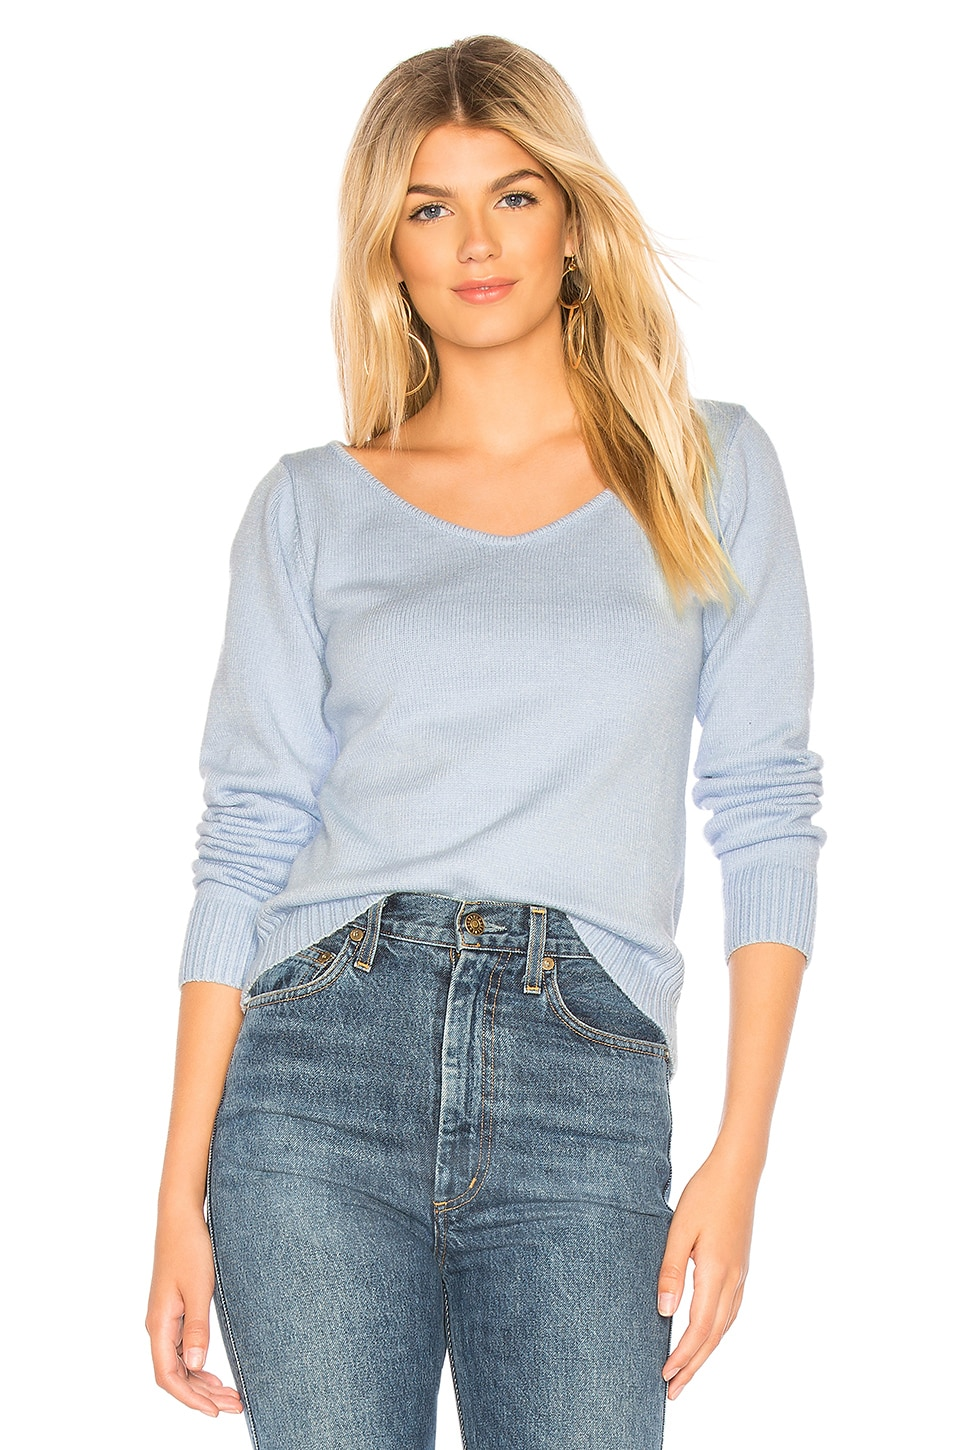 About Us Katie Asymmetrical Sweater in Light Blue